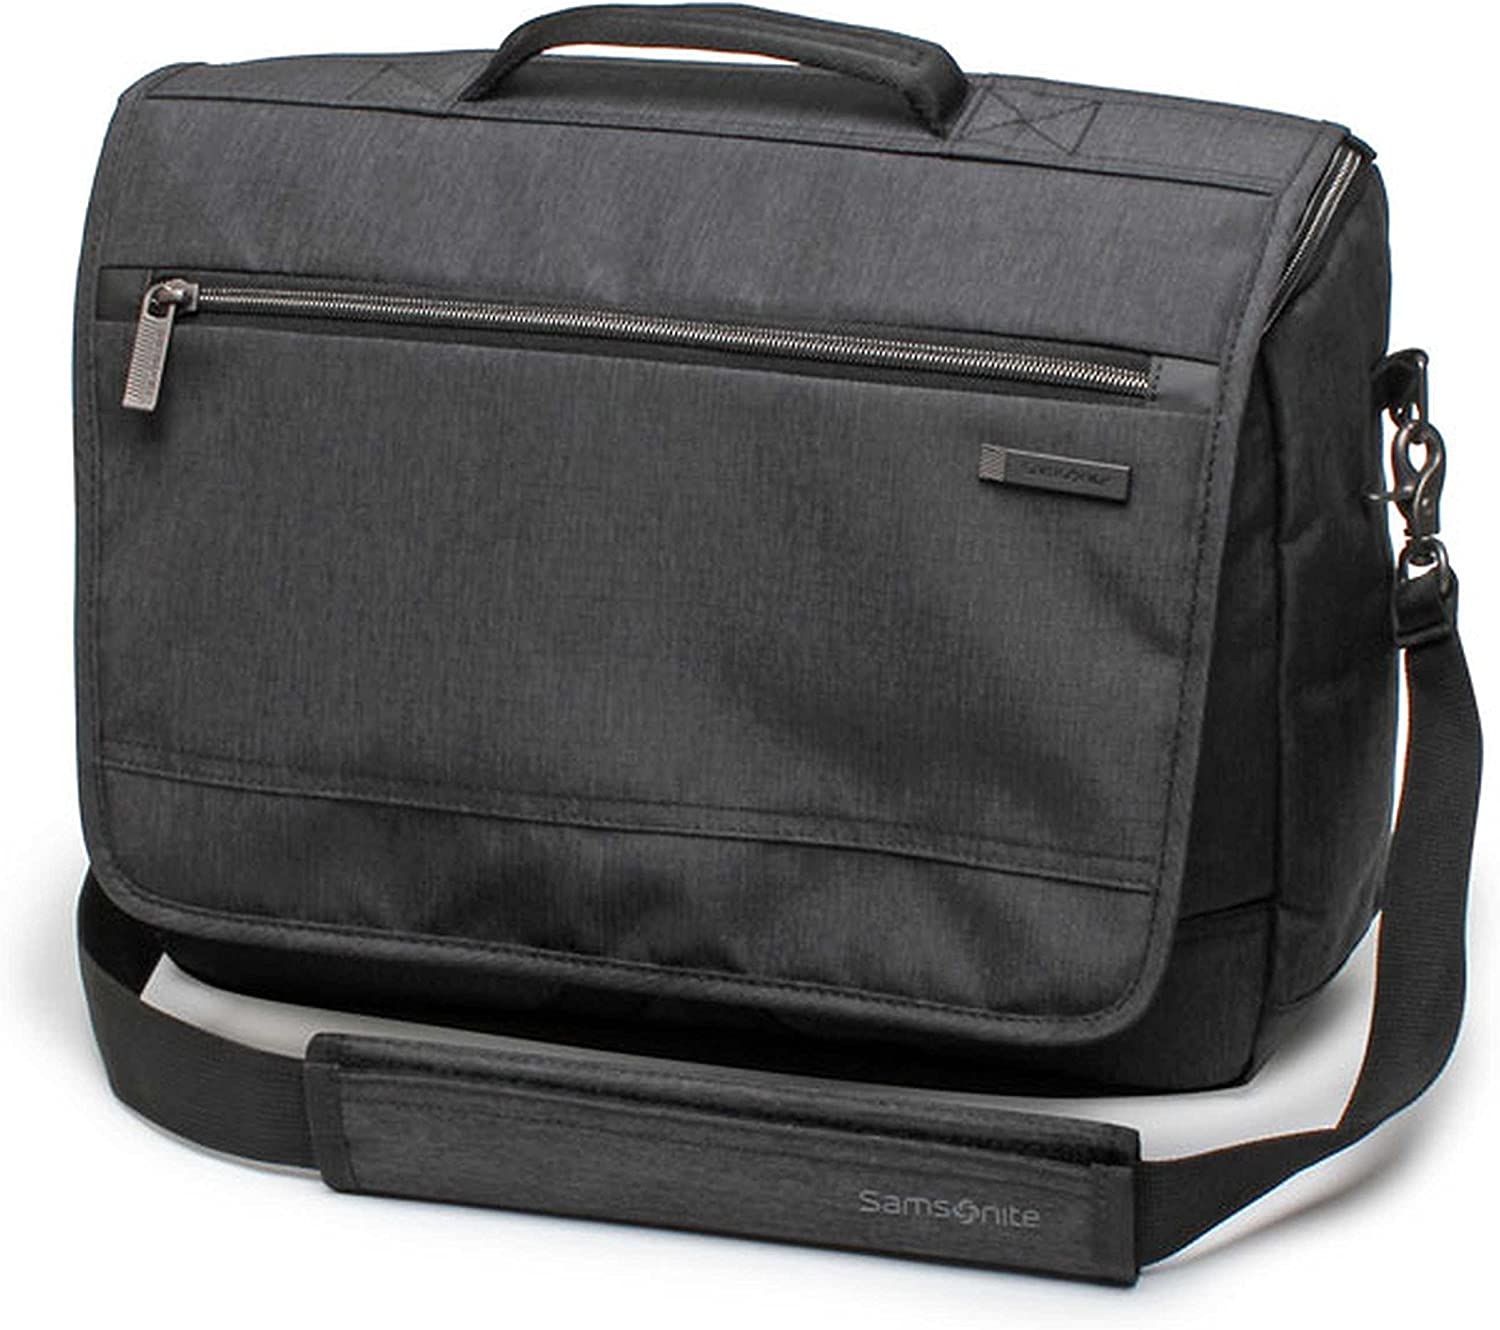 Samsonite Modern Utility Messenger Bag Laptop